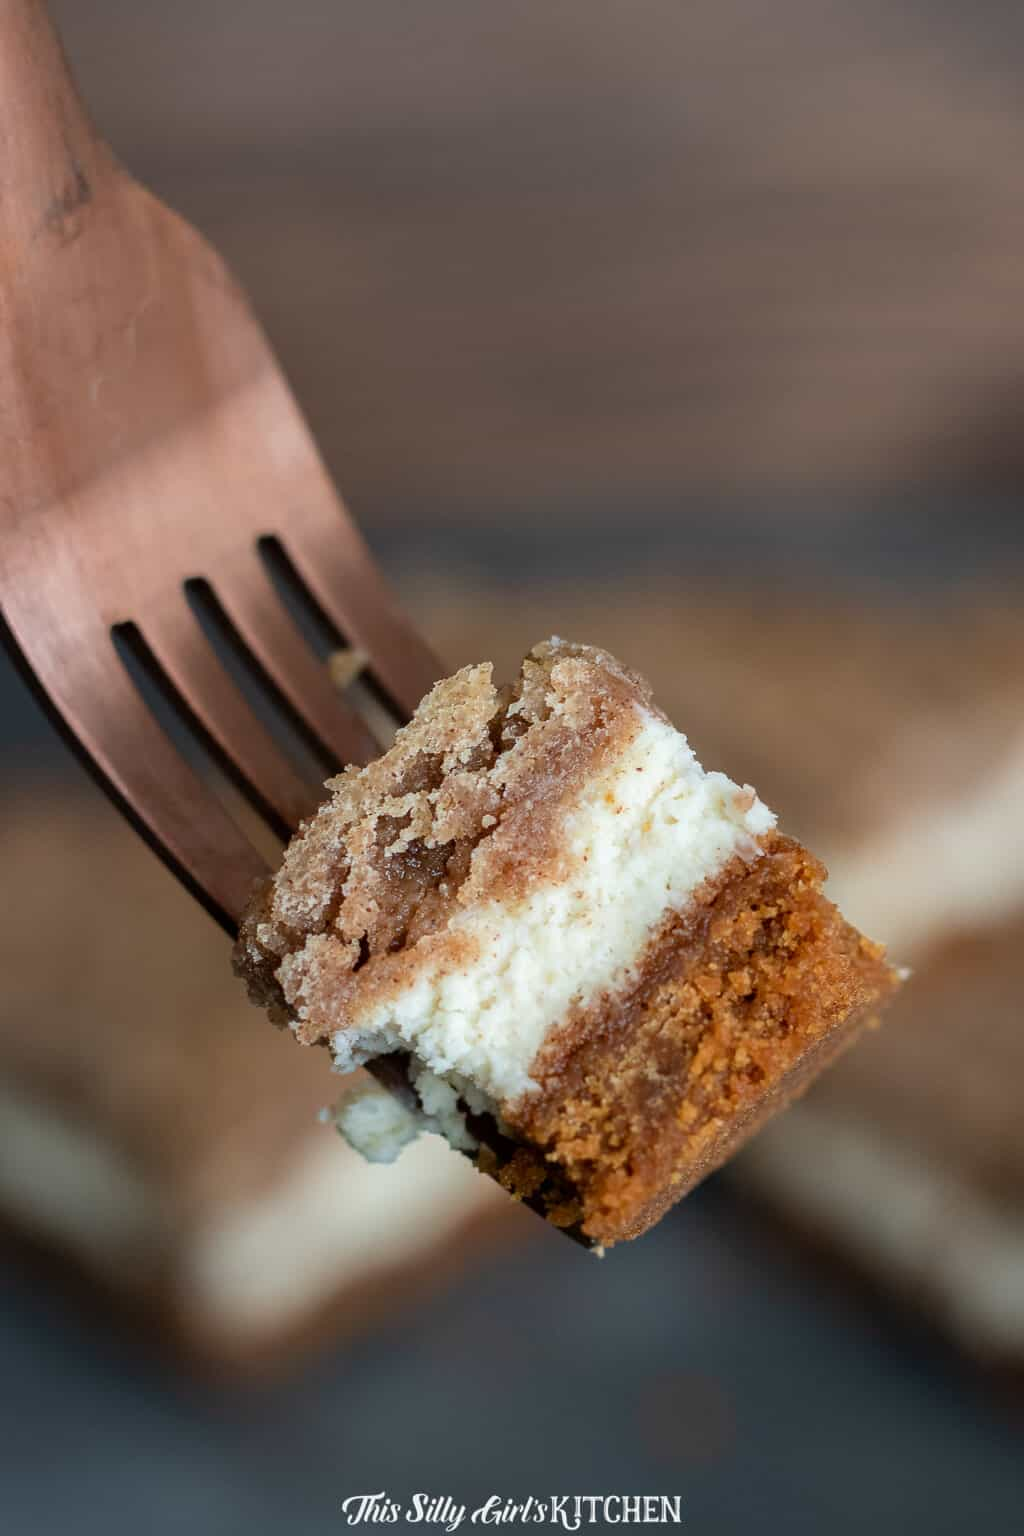 Snickerdoodle bars with cheesecake filling, a decadent cookie bar bursting with cinnamon goodness. #recipe from thissillygirlskitchen.com #snickerdoodle #cheesecake #snickerdoodlebars #cheesecakebars